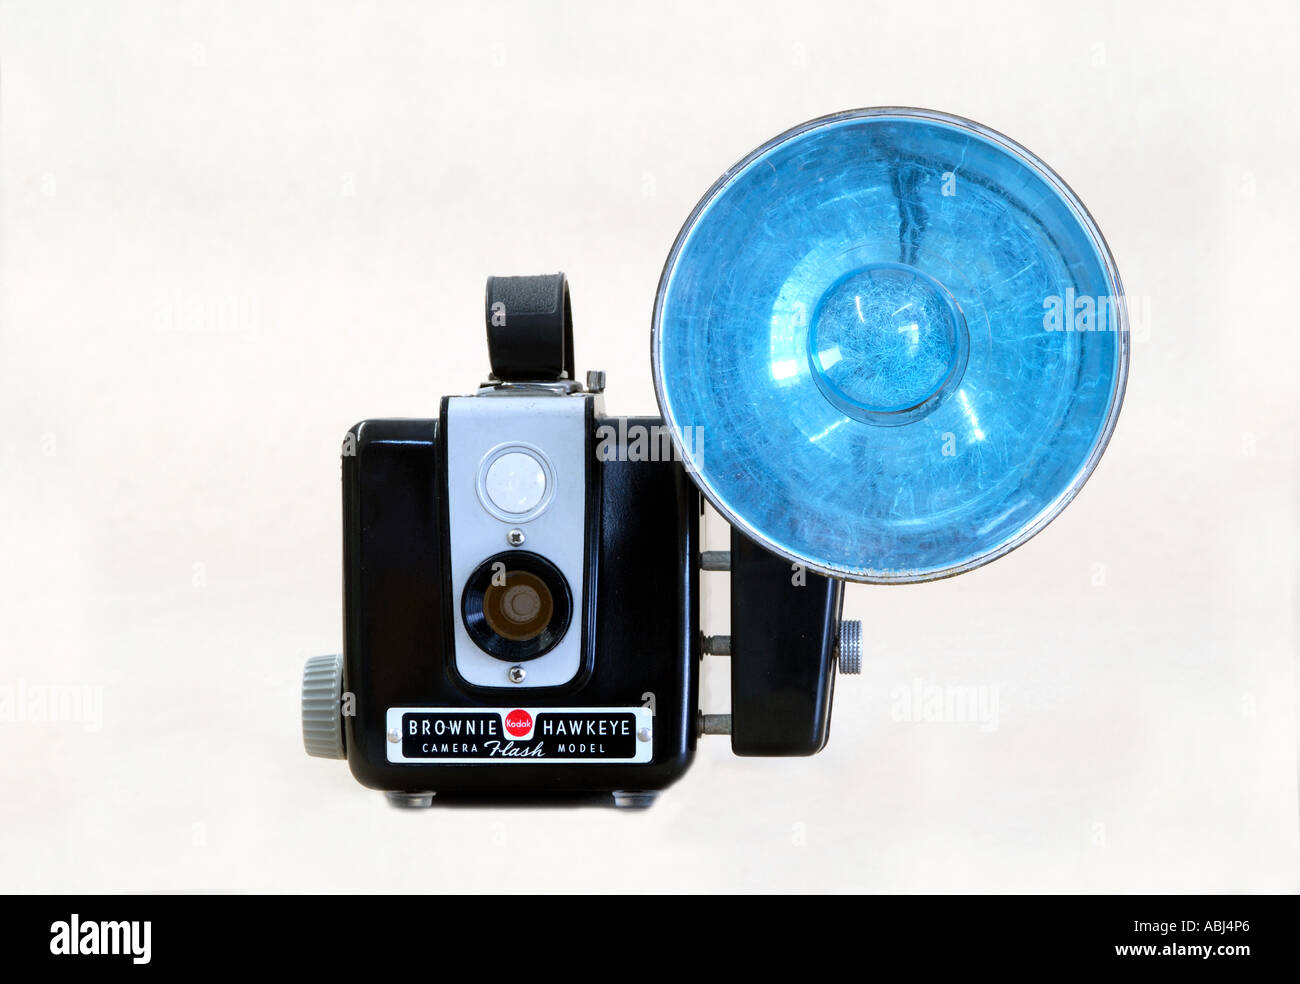 Brownie Hawkeye with flash - Stock Image